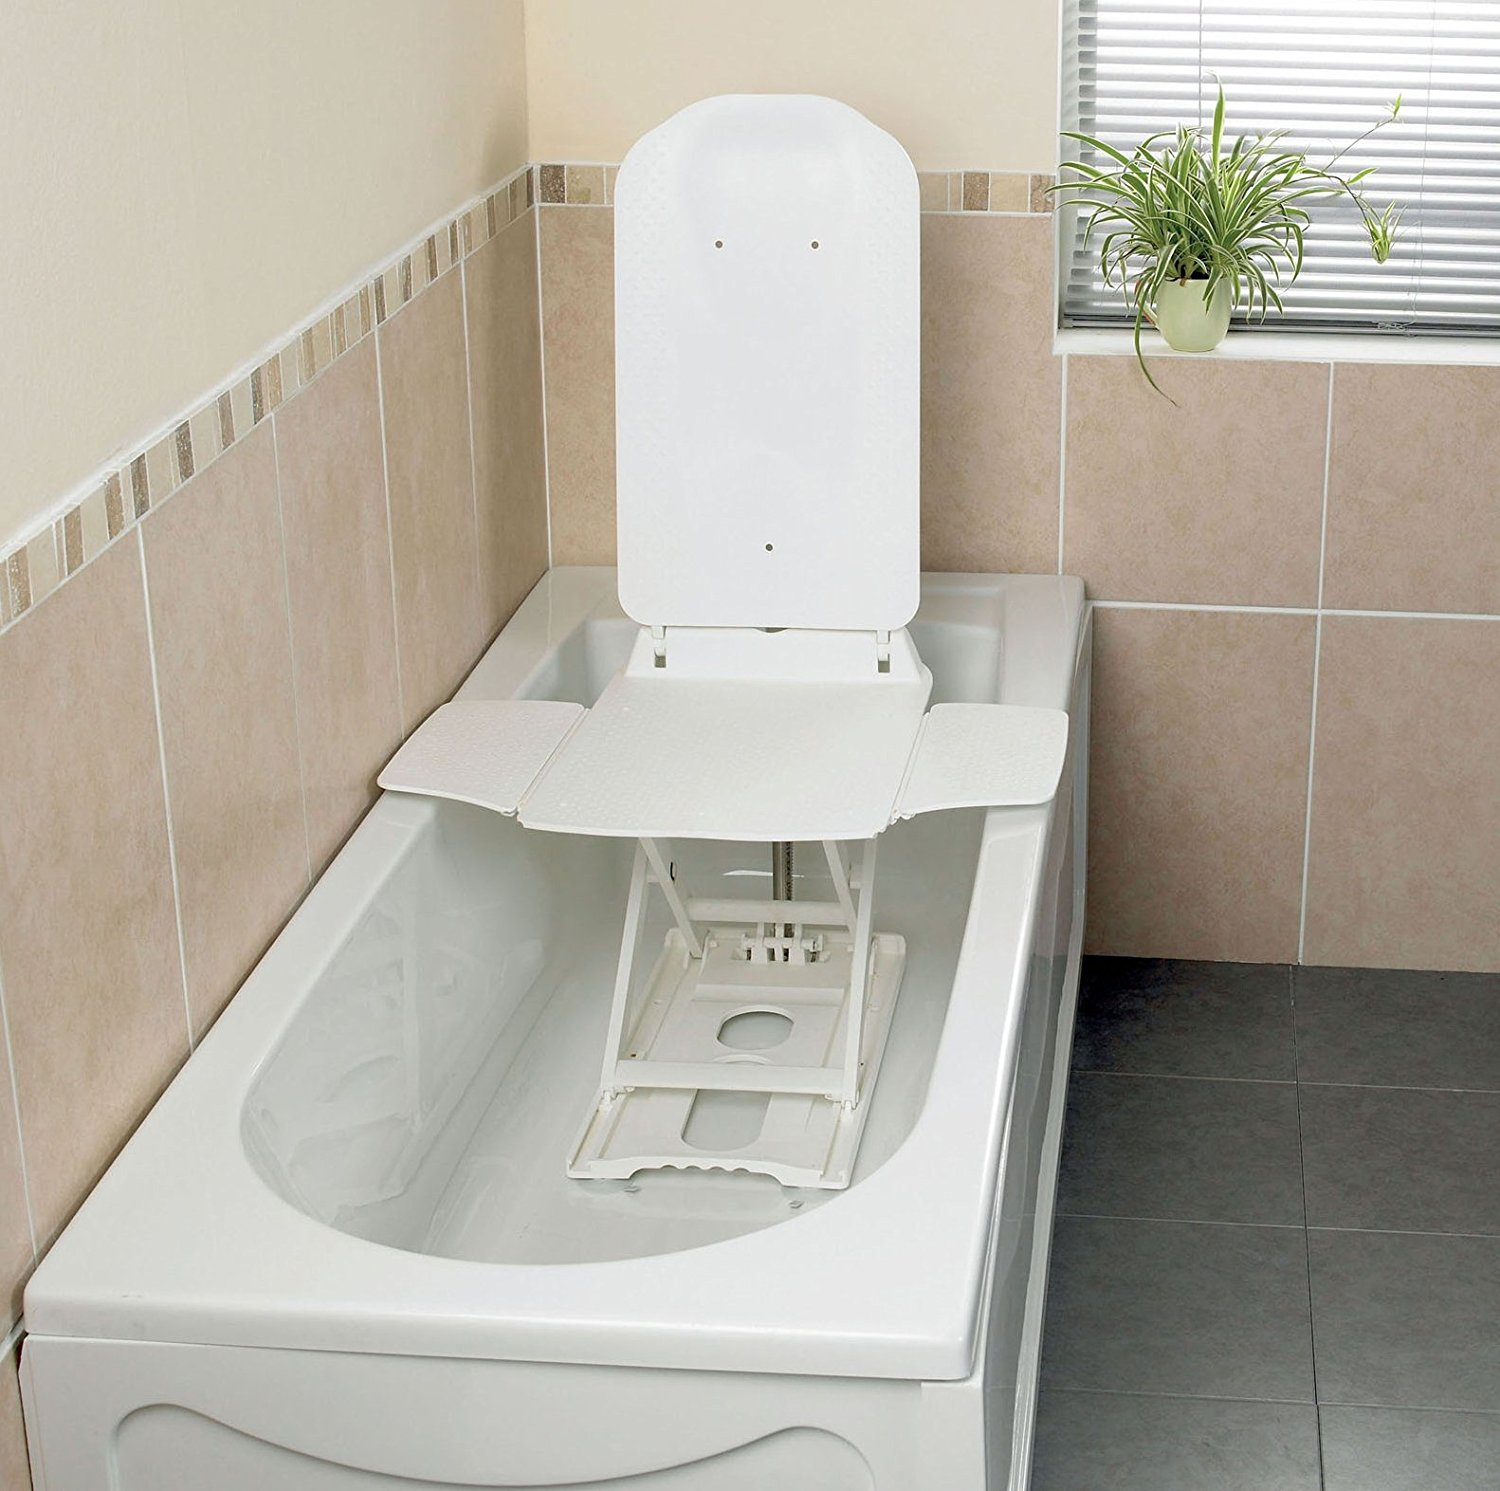 Bathtub Chairs For Elderly Bathmaster Deltis Bath Lift Review Shop Disability